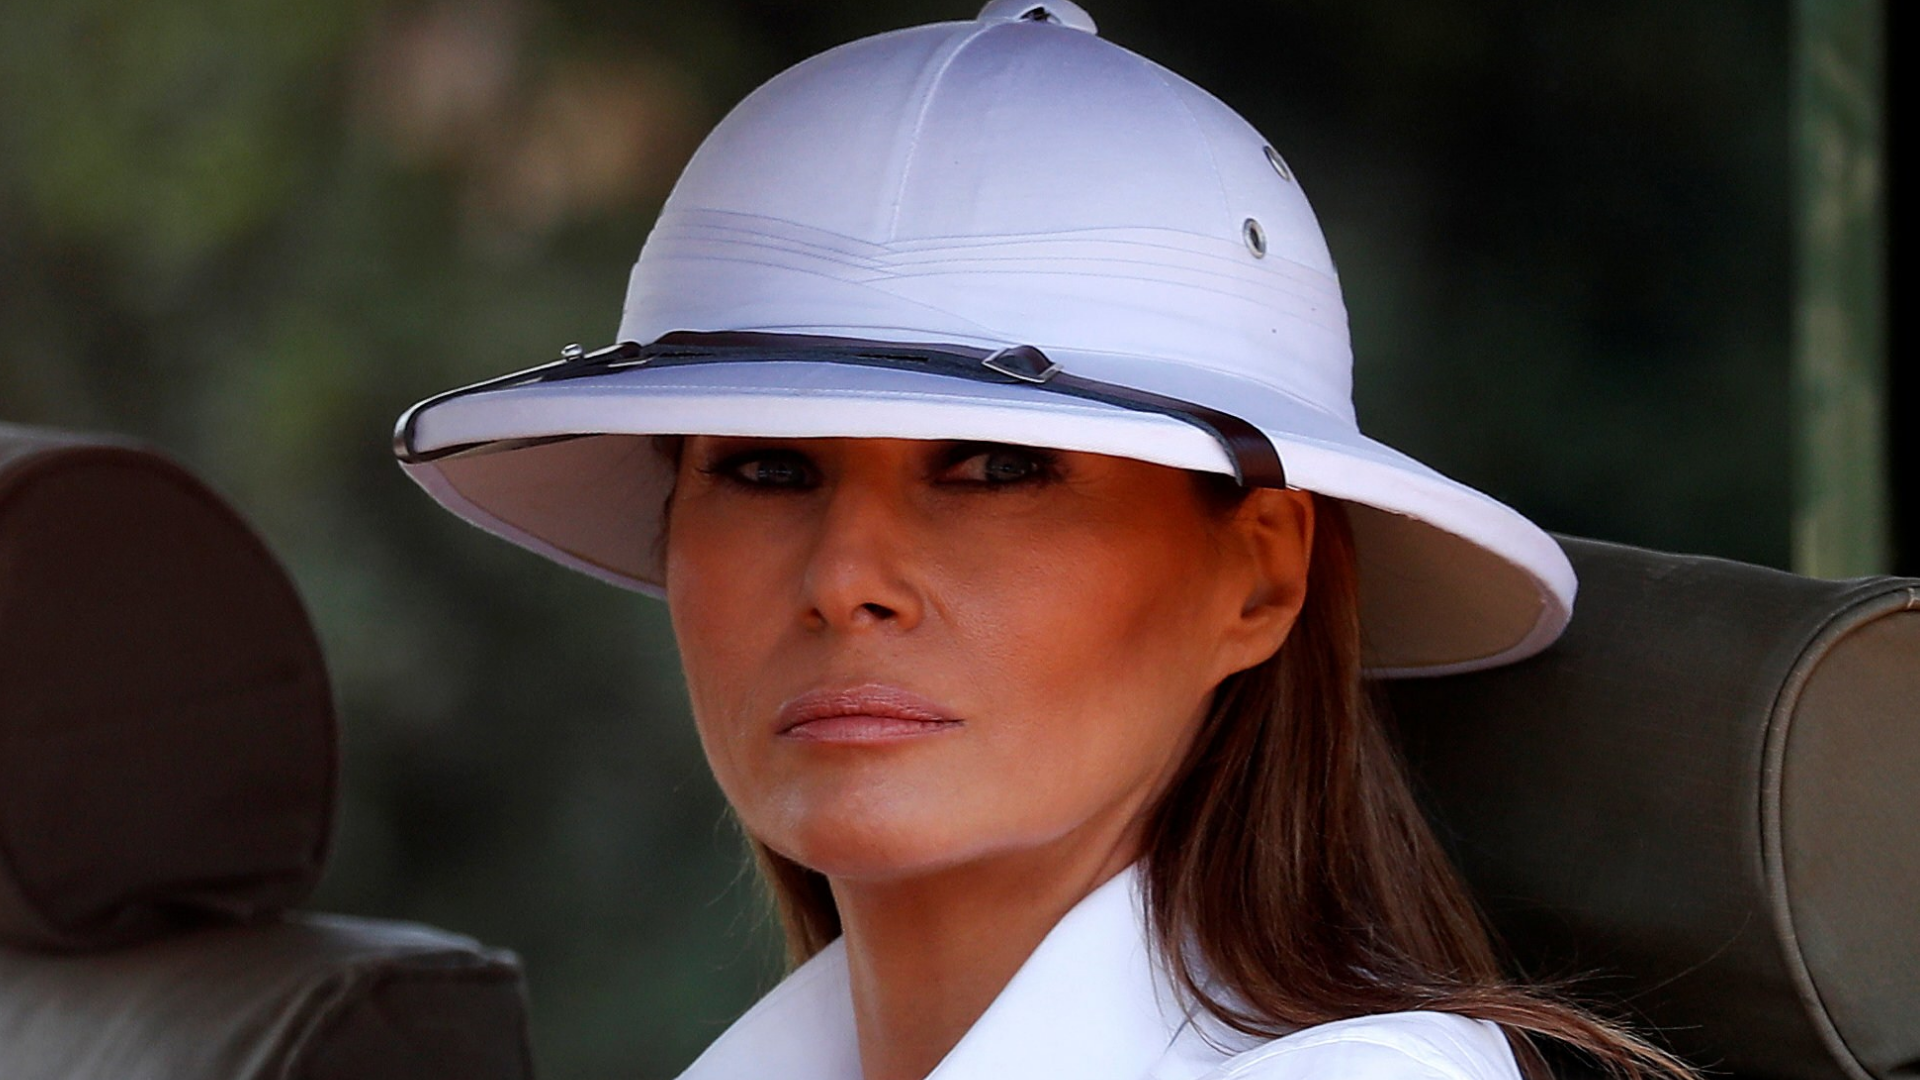 From 19th-century India to Melania Trump: How pith helmets became a symbol of colonialism